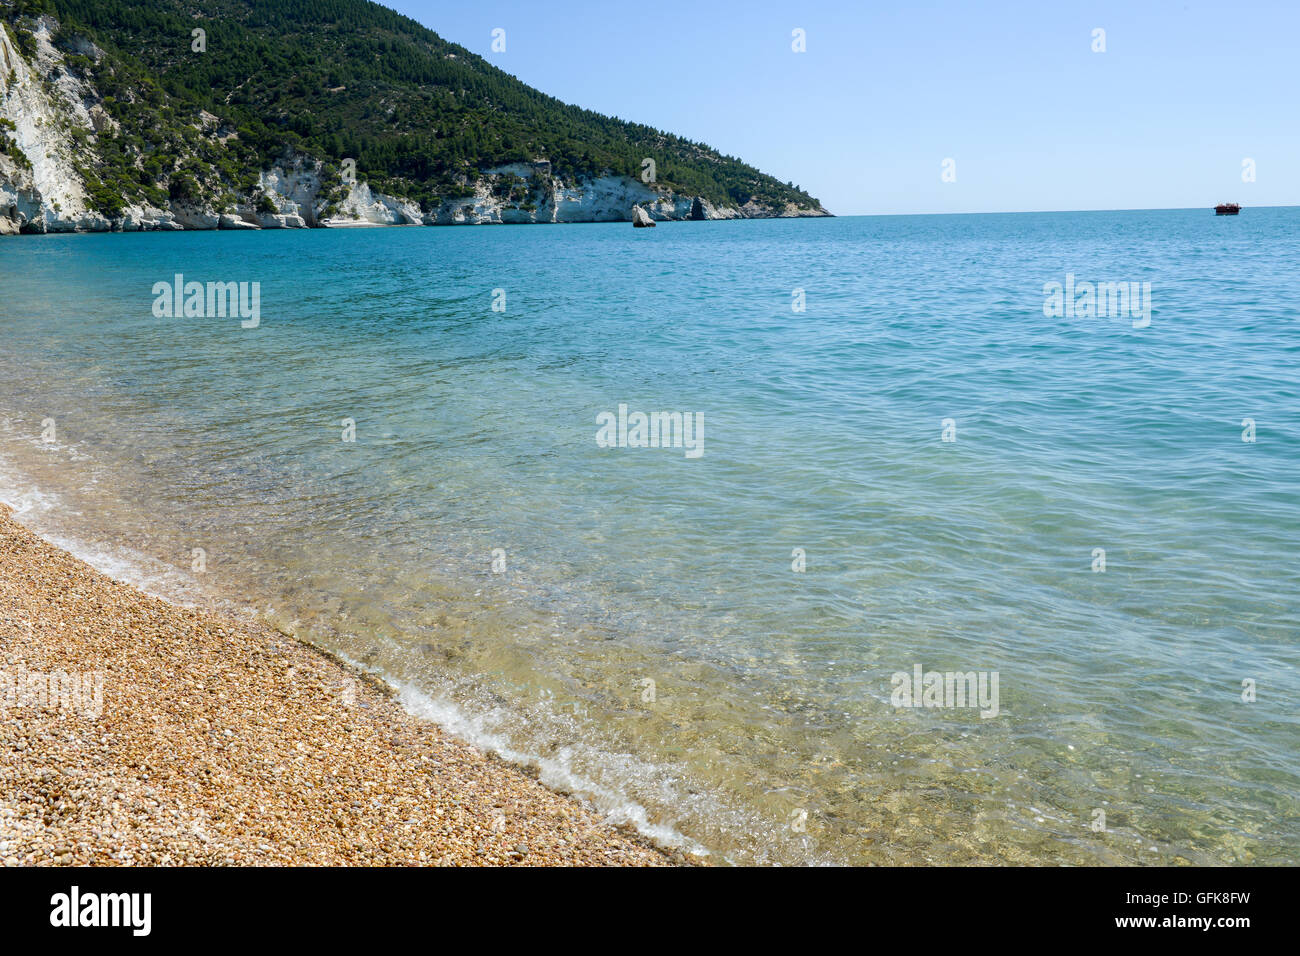 vignanotica bay photos vignanotica bay images alamy. Black Bedroom Furniture Sets. Home Design Ideas